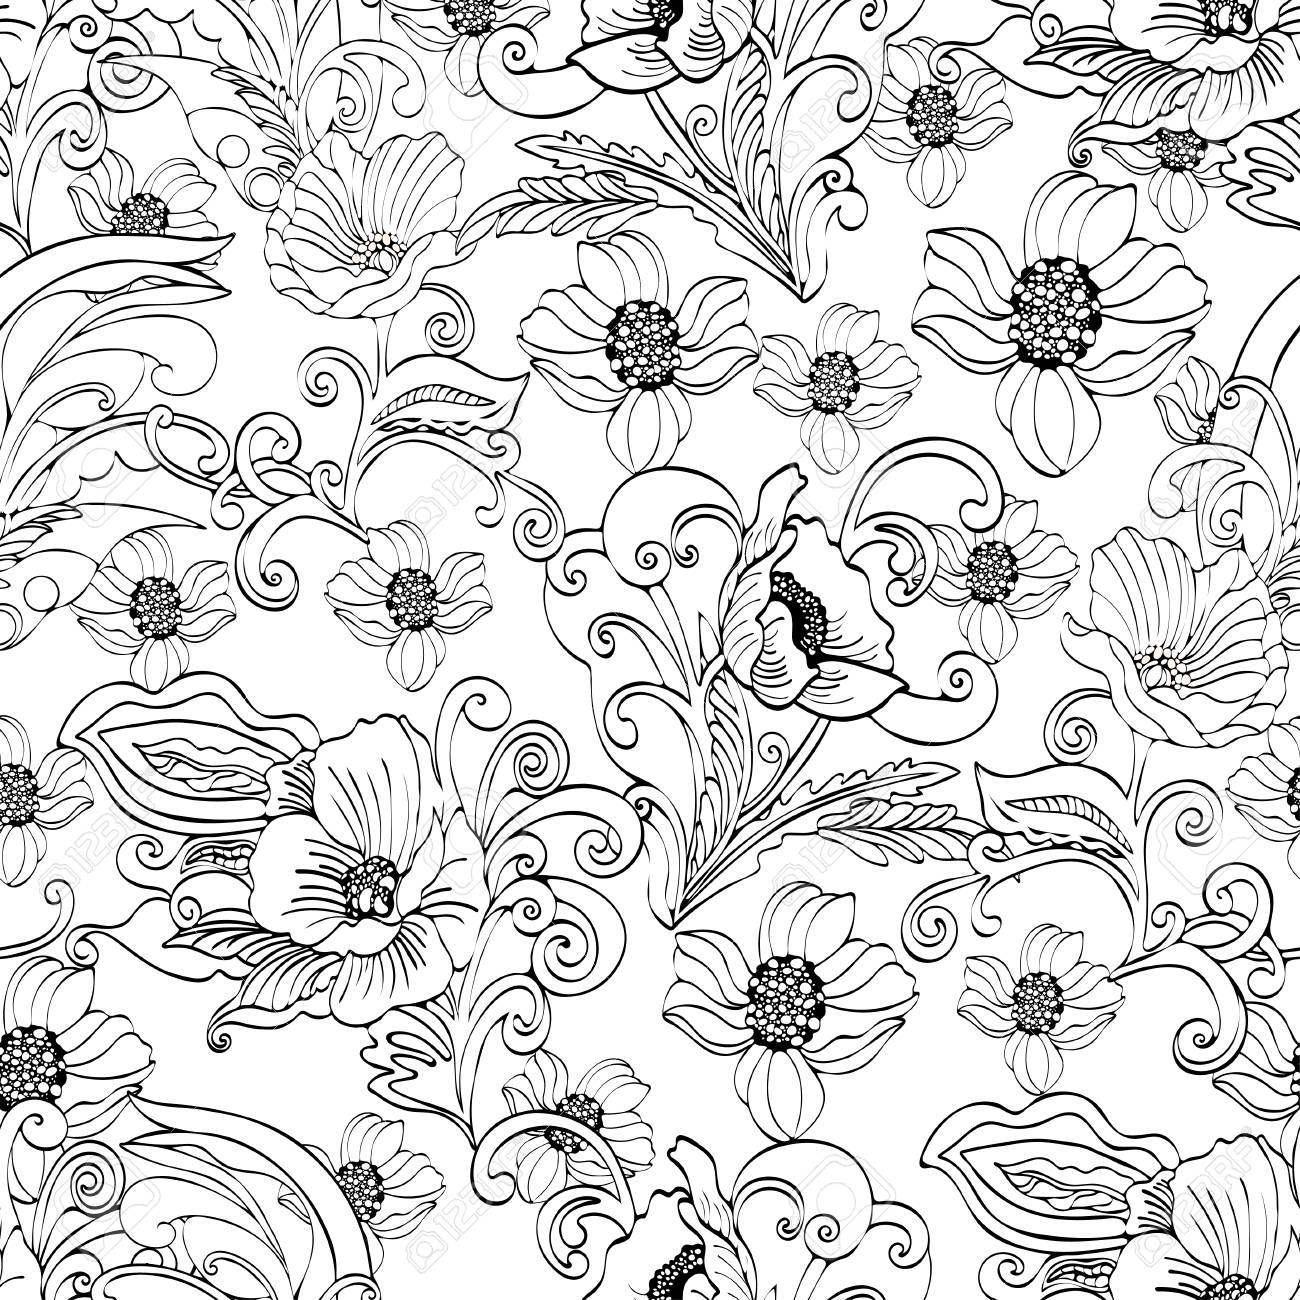 Abstract Flowers Seamless Pattern Vector Floral Black And White